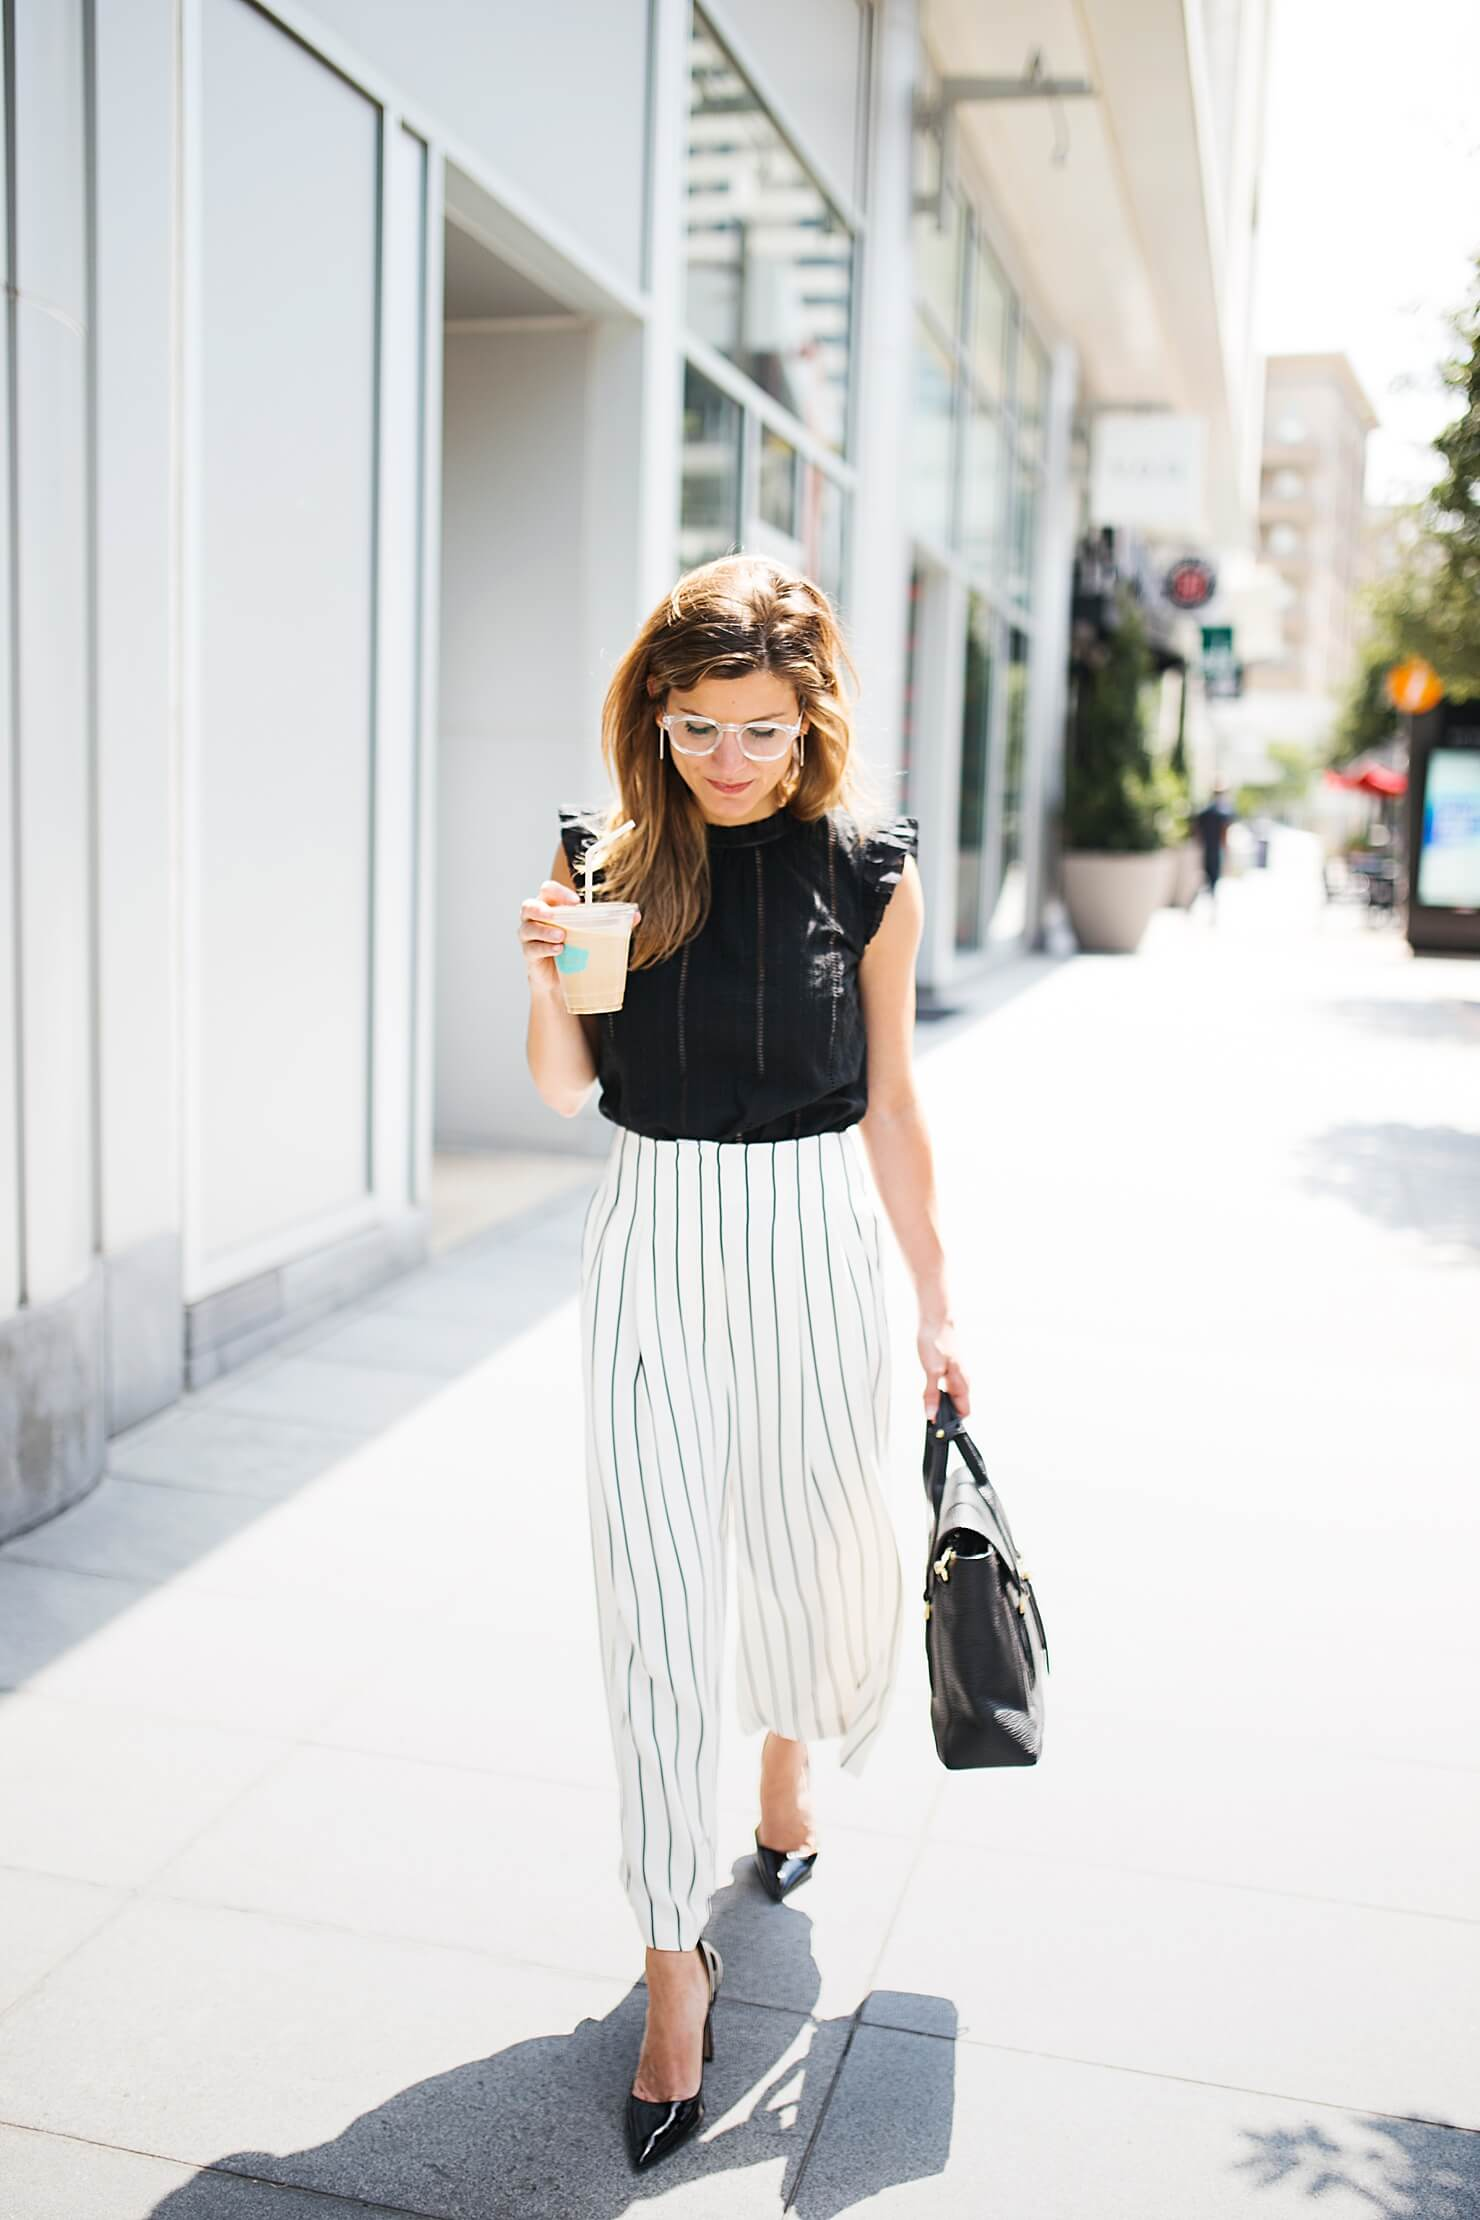 brighton keller wearing eyelet black top with striped culottes, wide leg pants and pumps